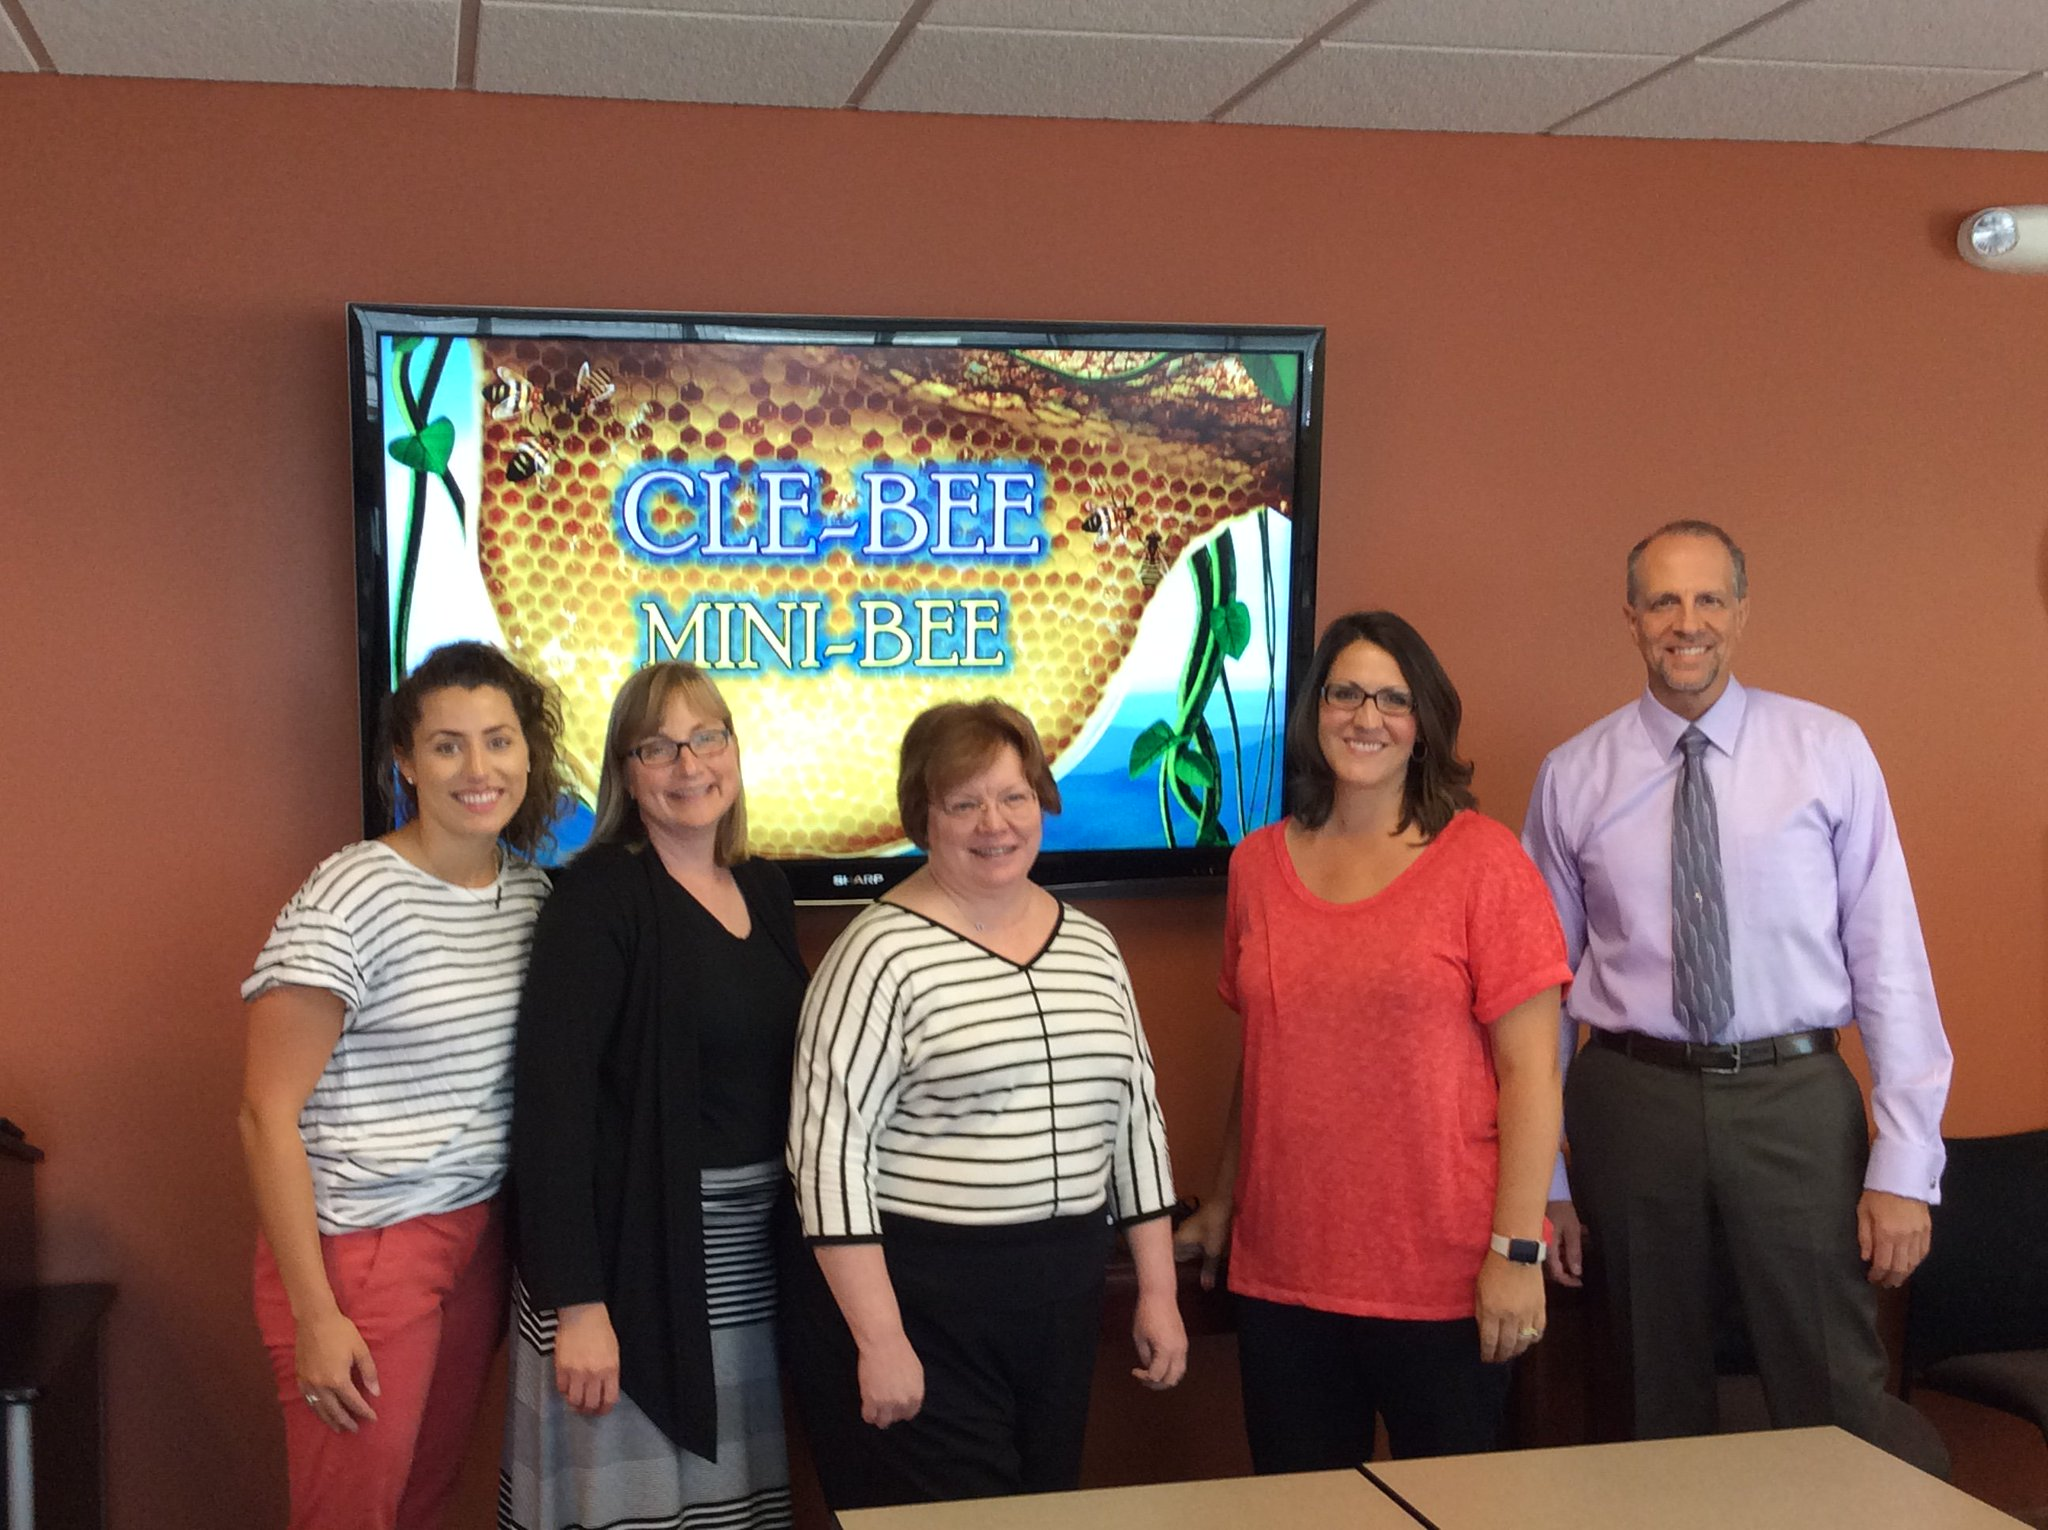 Corrigan Krause and DMS Management Solutions team for our #CLEBEE on September 8th! It is going to be a fun night! https://t.co/sJqAyRggTV